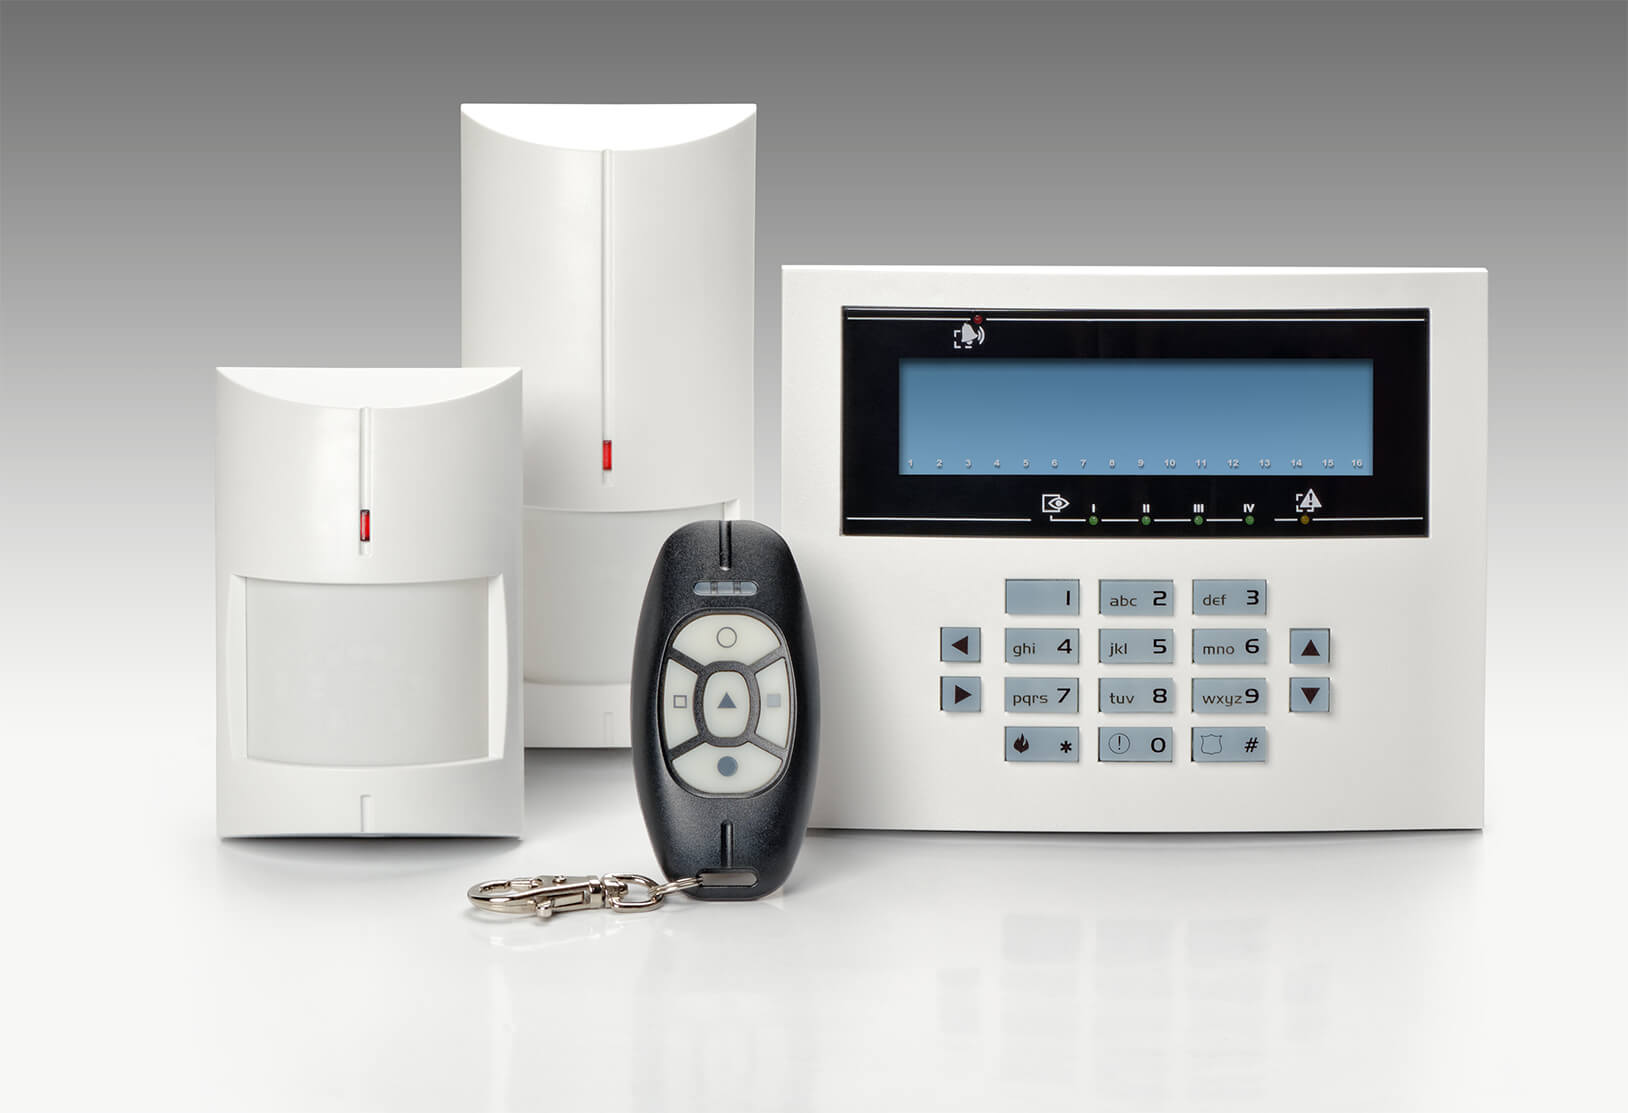 Business & Residential NSI / NACOSS Approved Burglar Alarms In Finsbury EC2 - Local Finsbury EC2 security company.Call 02078872244 - Dedicated to Safety & Security. Companies, shops and homes ..